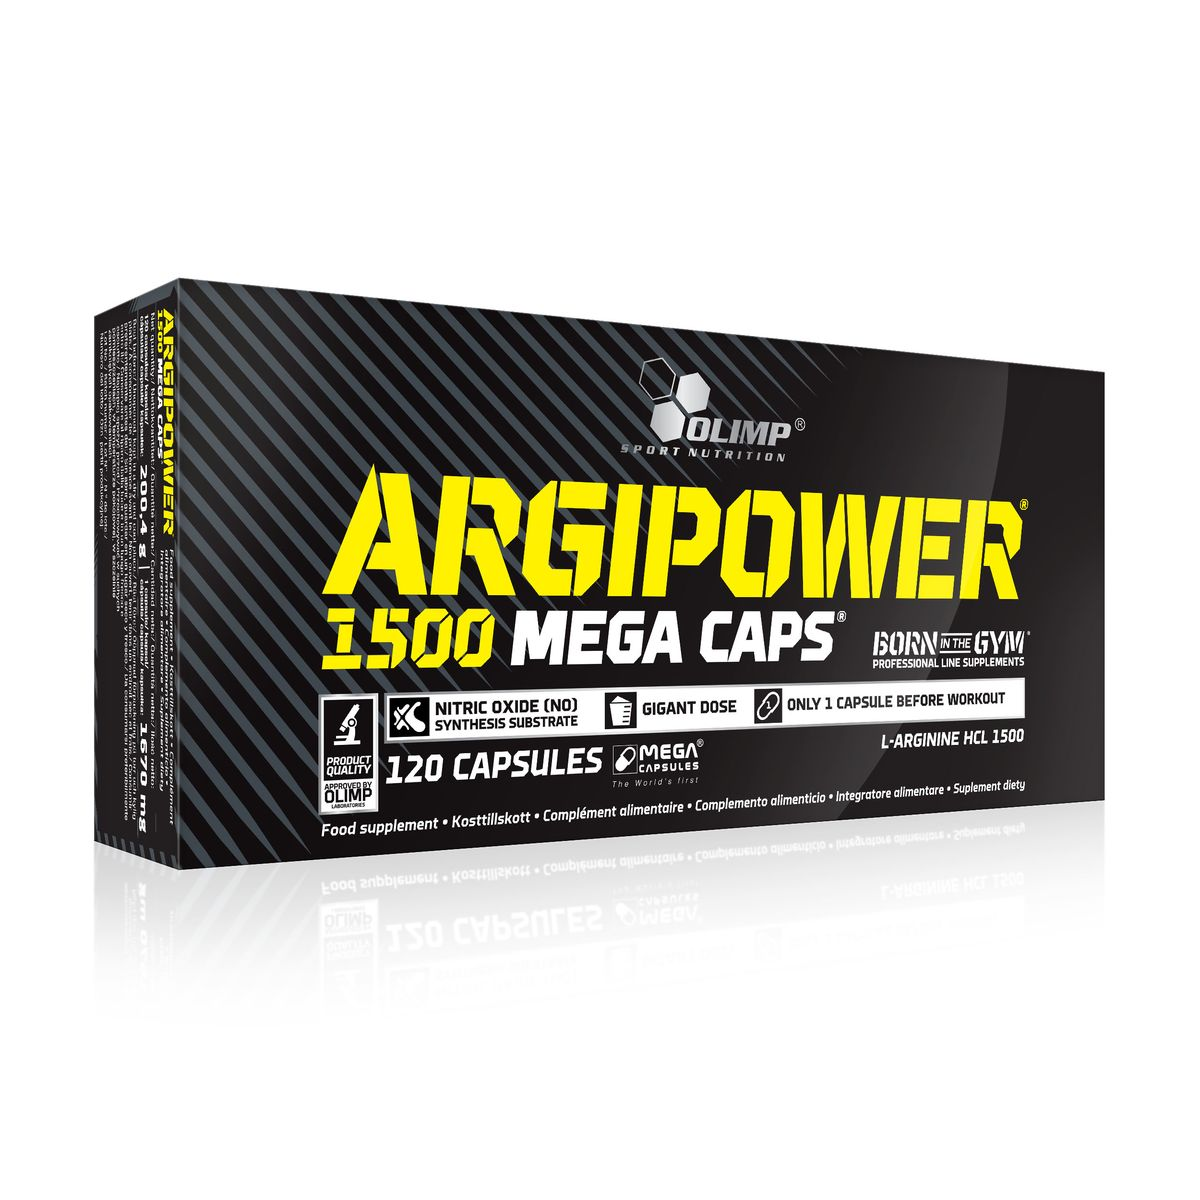 Аминокислотный комплекс Olimp Sport Nutrition ARGI POWER Mega Caps 1500, 120 капсул креатин olimp sport nutrition mega caps 120 капсул